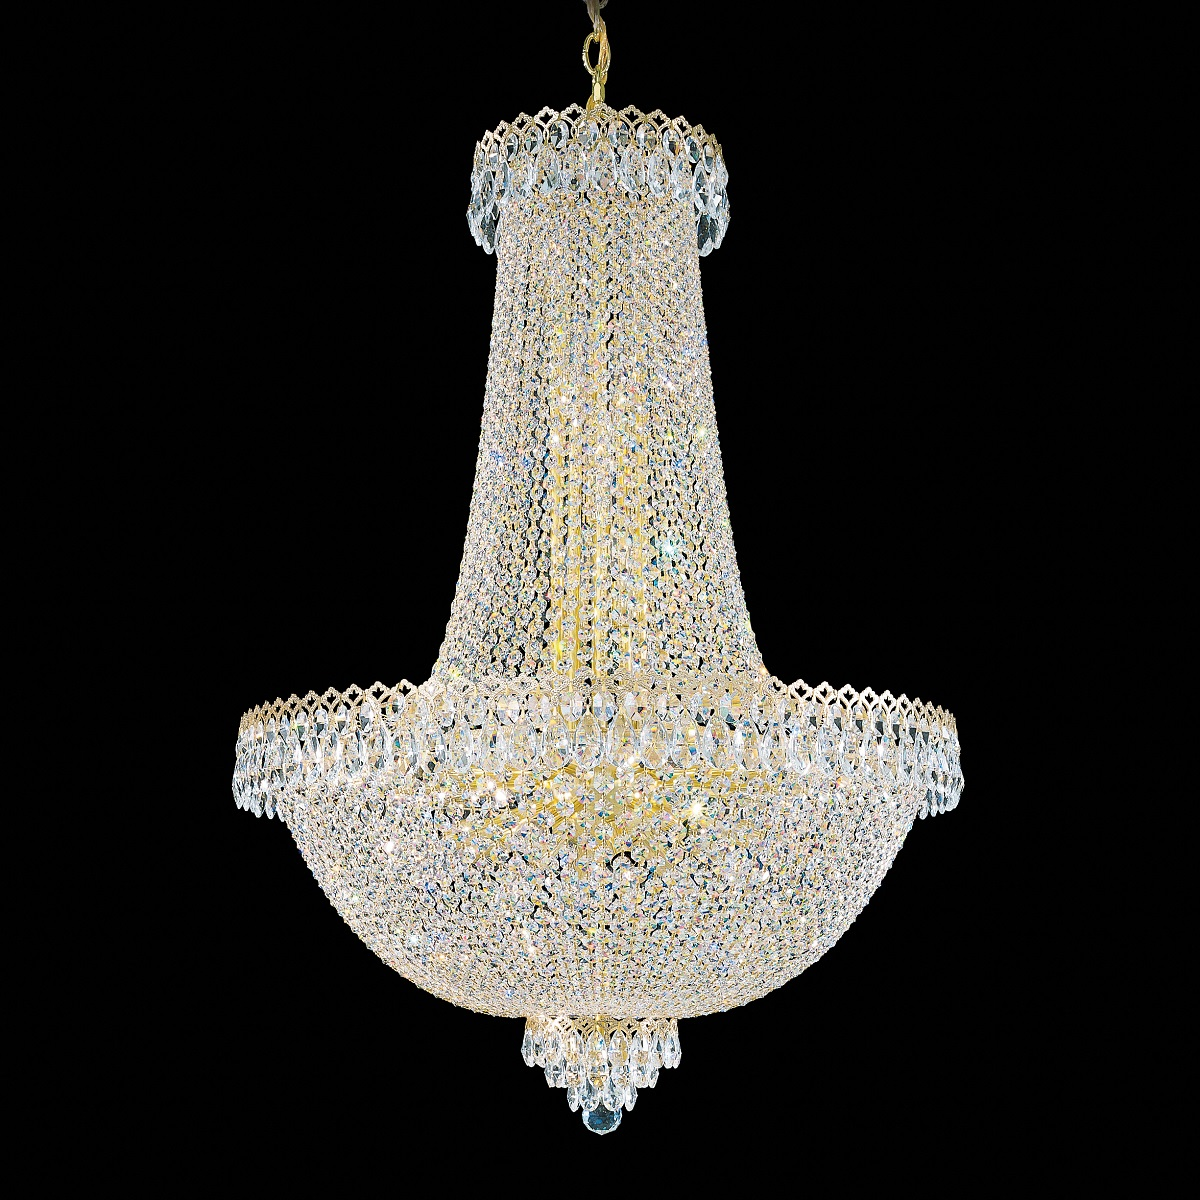 Schonbek Camelot Classic Crystal Chandelier Brooklyn,New York from Accentuations brand